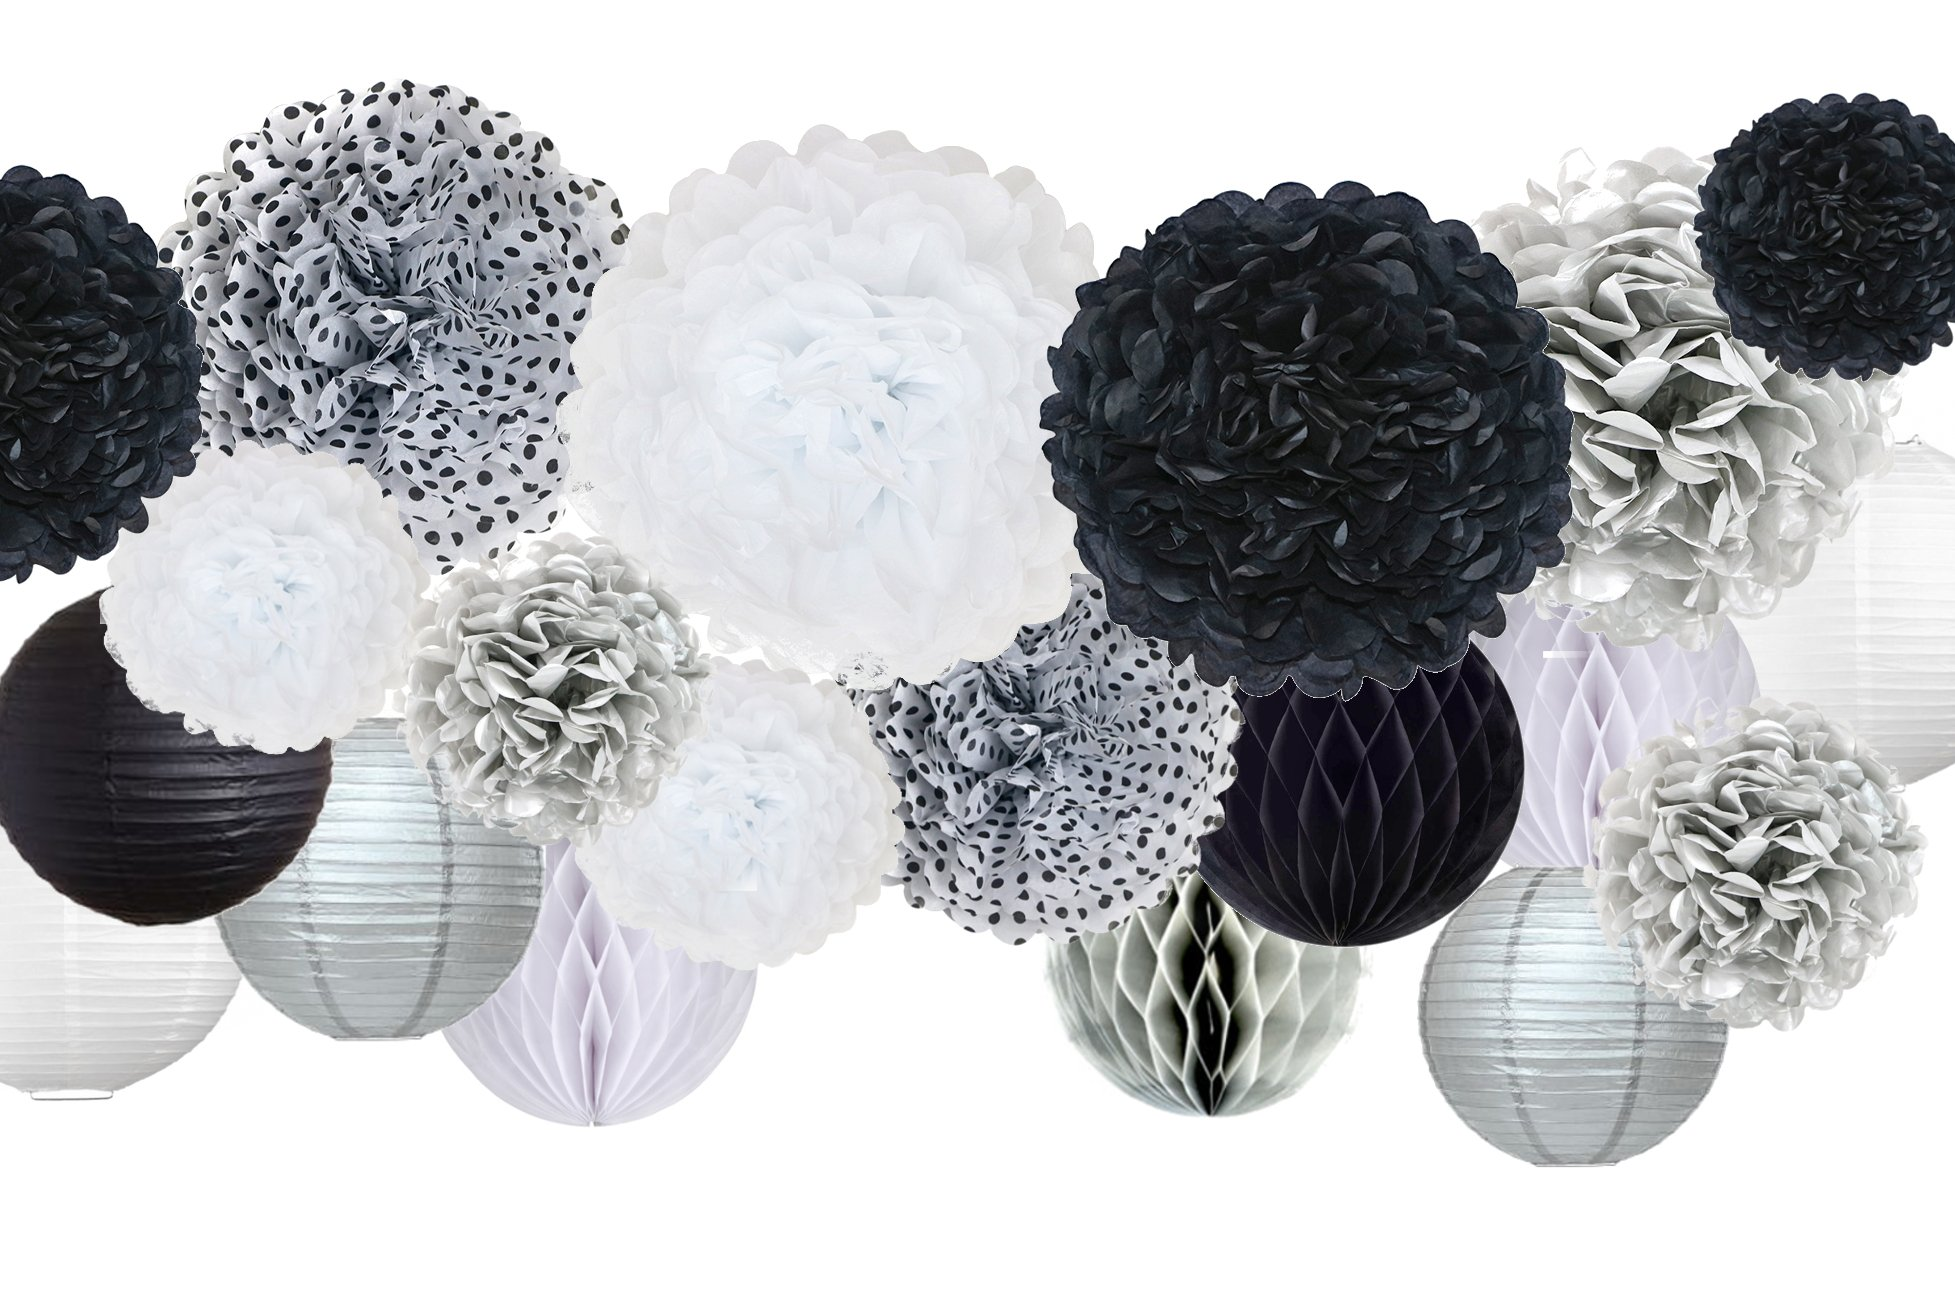 30 Pcs Tissue Paper Pom Pom Kit, Mixed Sizes 14'', 10'', 8'', 6'', Paper Flowers, Lanterns, Honeycomb Balls, for Wedding, Birthday, Anniversary, Retirement, Bridal Shower, Black, Silver, White, Polka dot